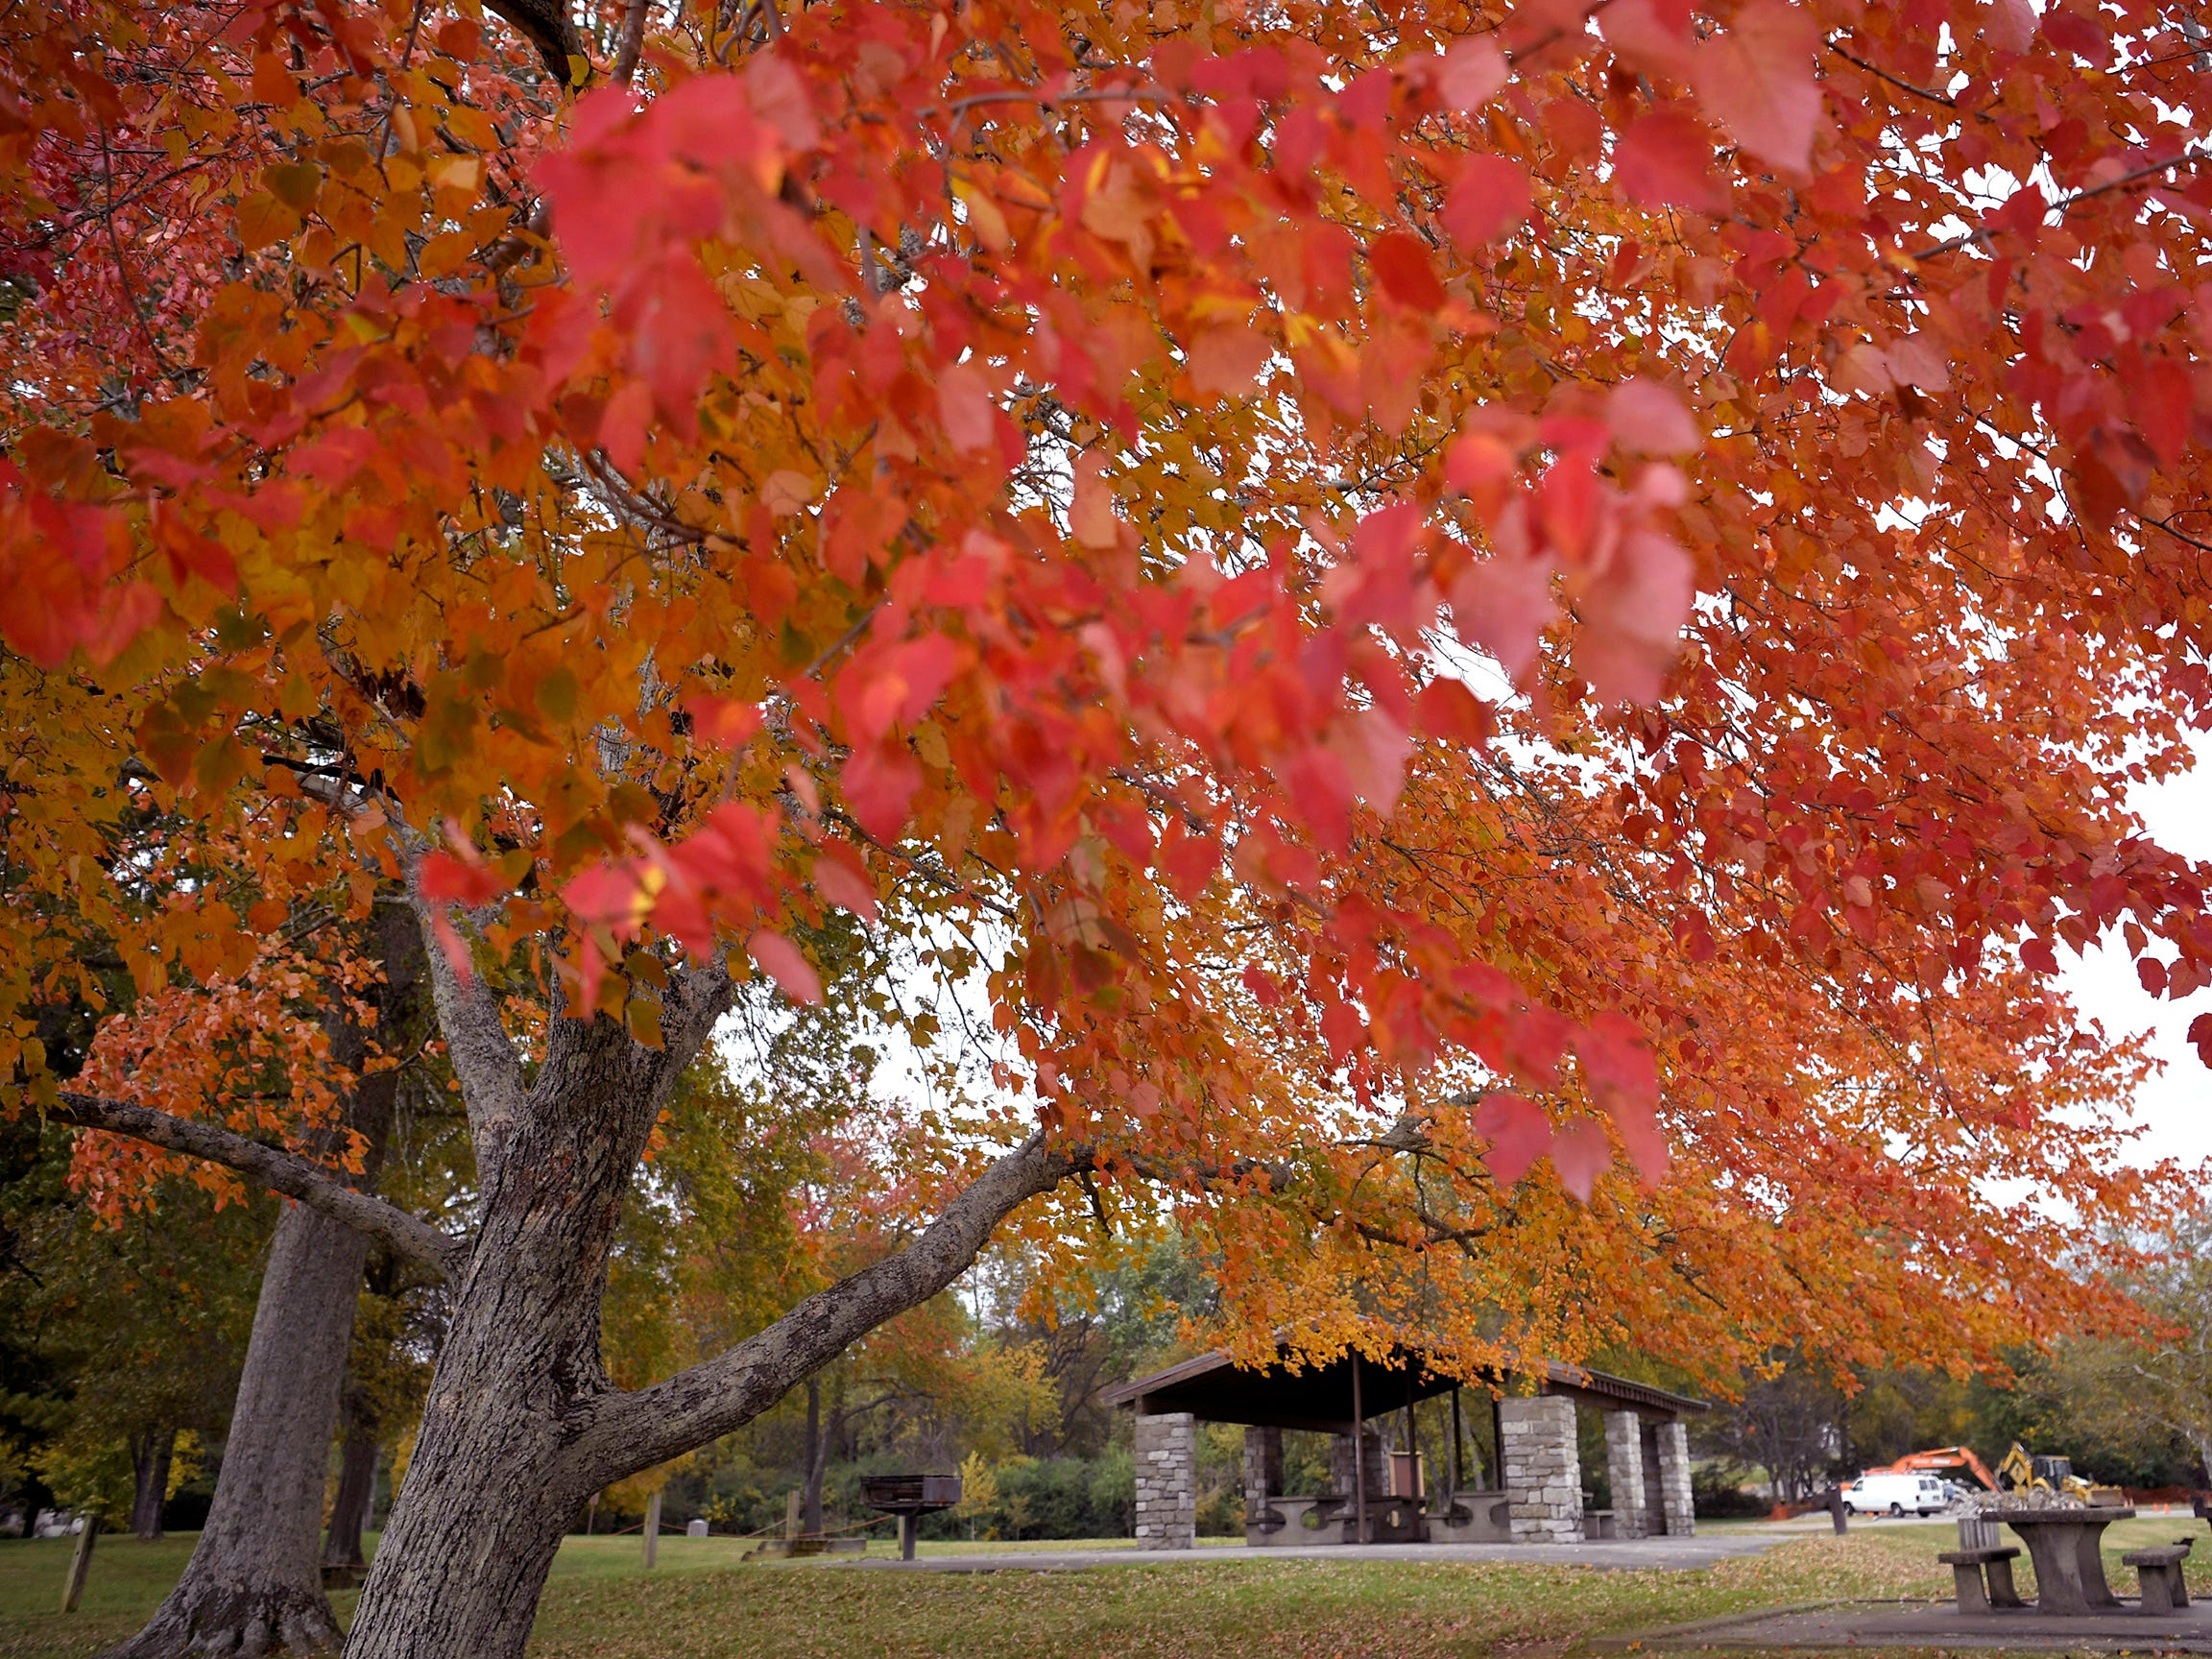 Leaves begin to change colors in a park in Gallatin on Wednesday, Oct 31, 2018.